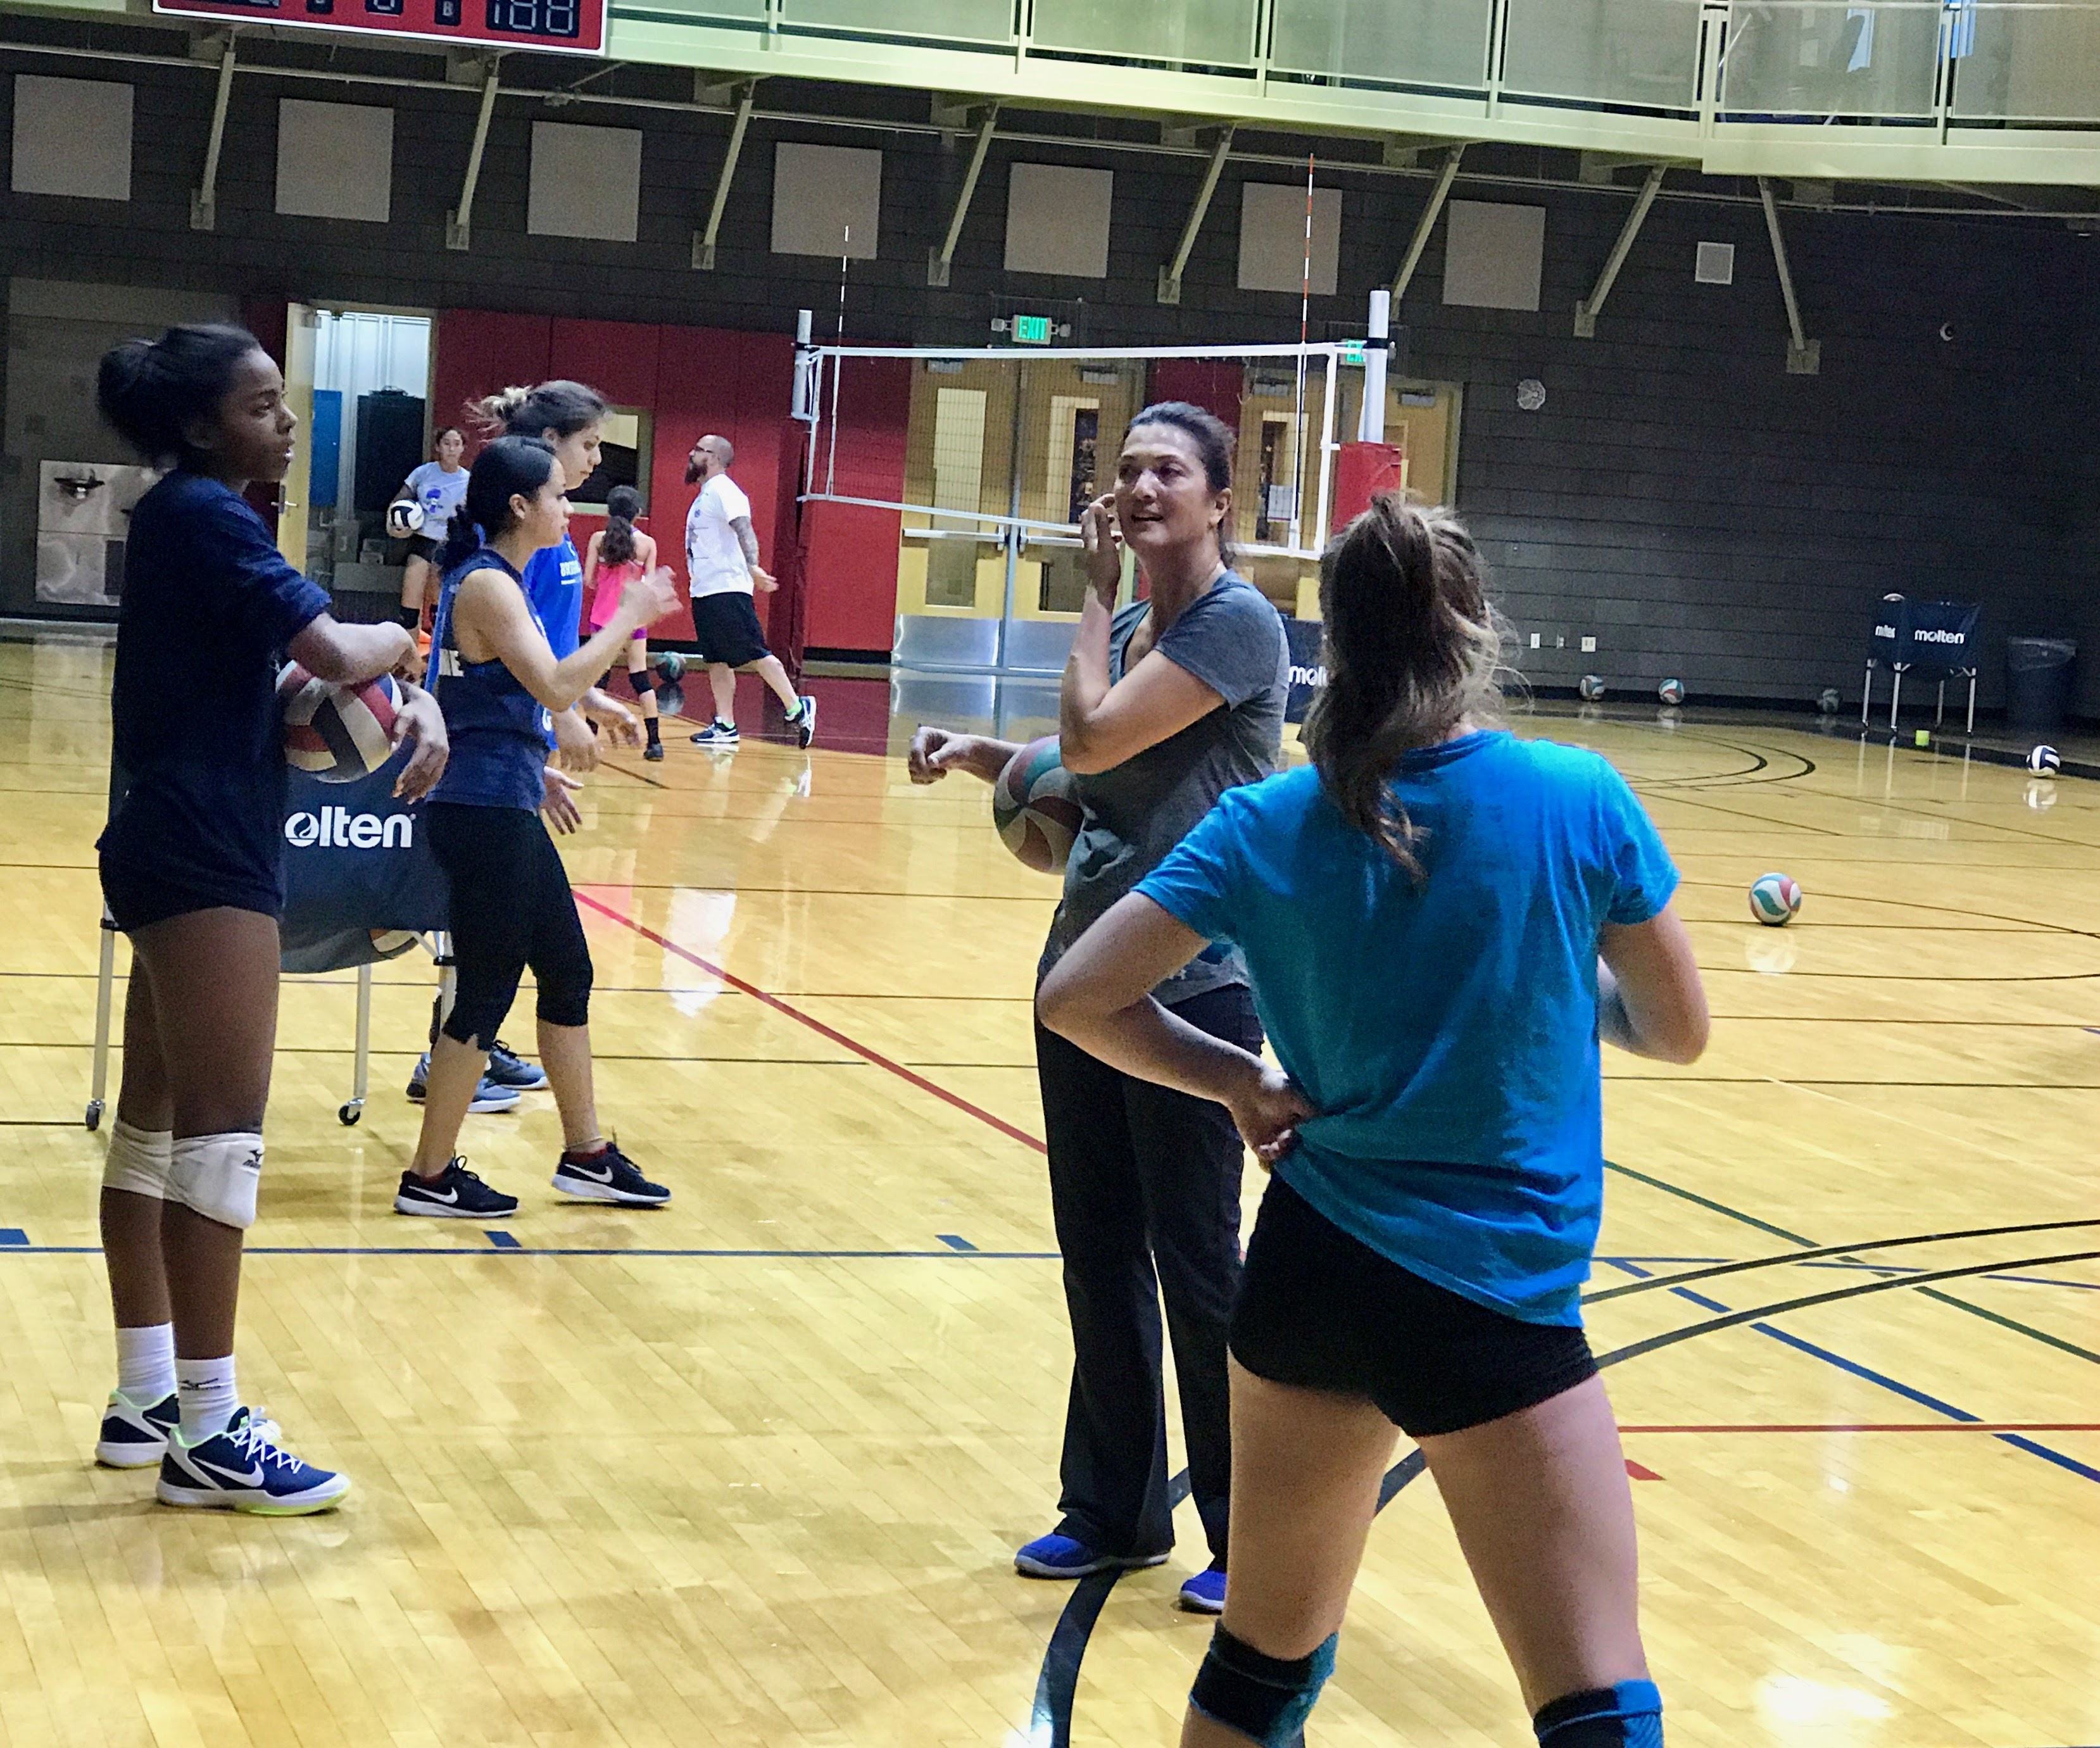 Former teammate indoor Olympian, world beach champion and two-time US Olympic beach volleyball coach Liz Masakayan at Stupak visiting a Boot Camp class.